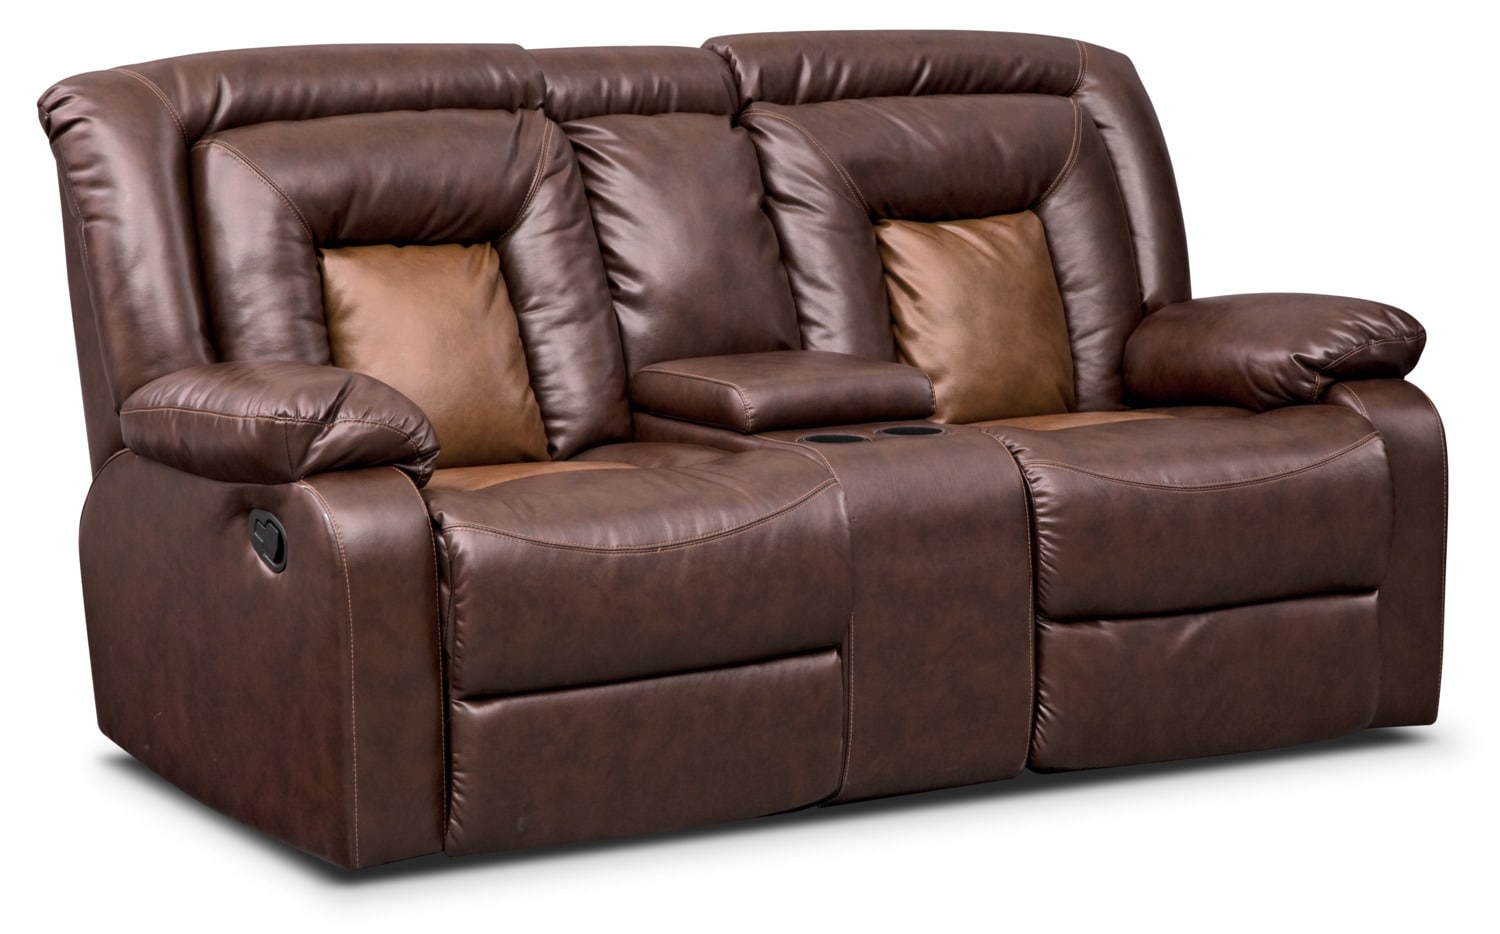 Mustang Dual Reclining Sofa Dual Reclining Loveseat And